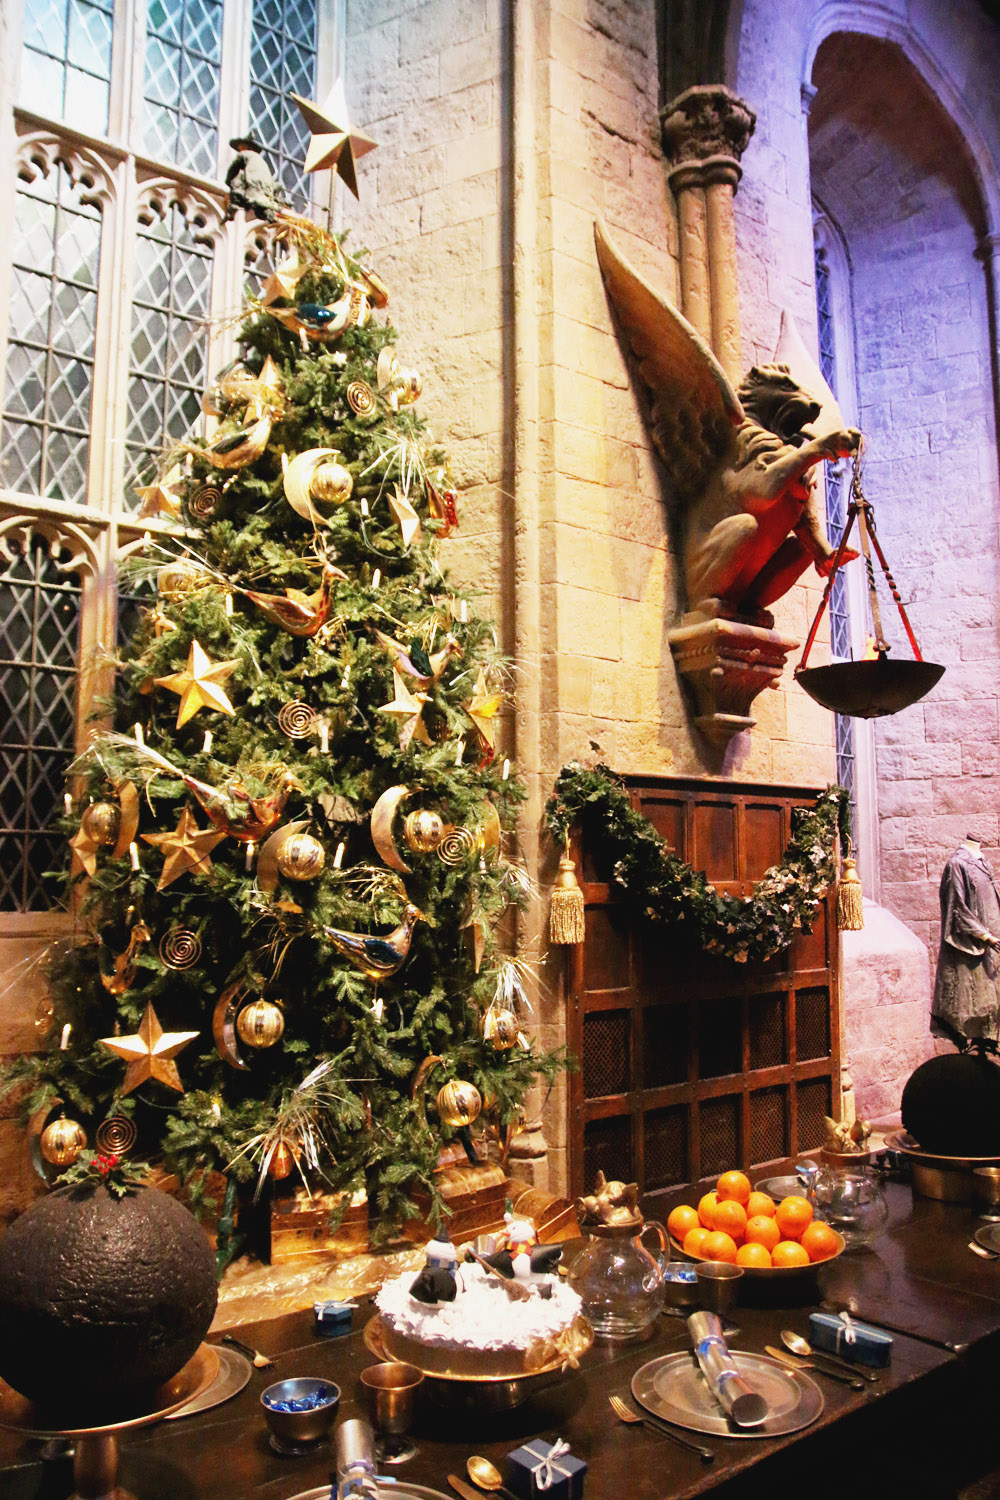 Harry Potter Warner Bros Studio Tour London Hogwarts in the SnowGreat Hall